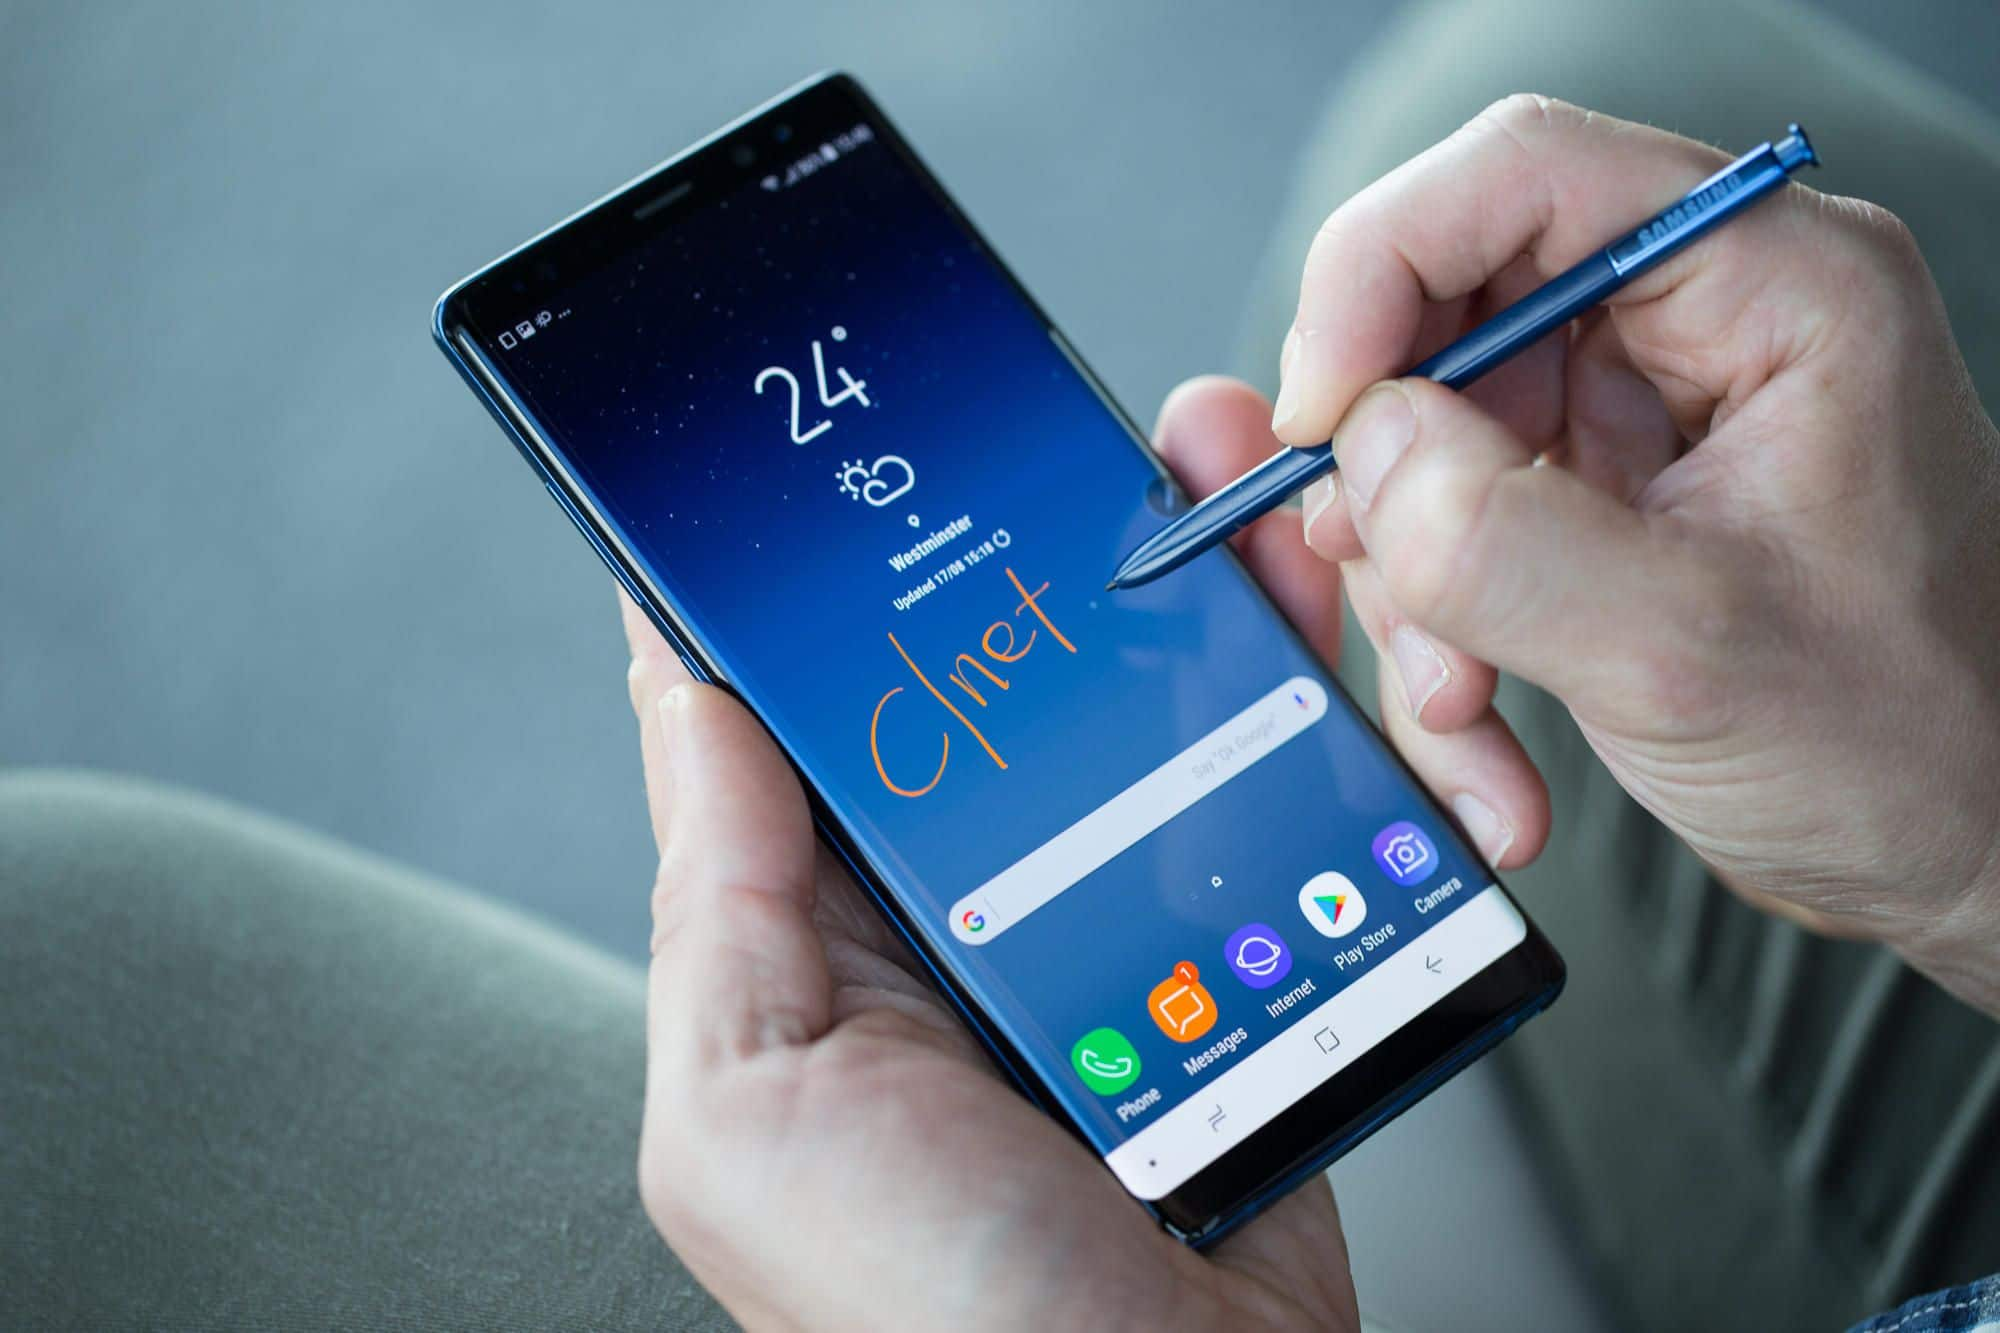 How To Unlock Your Samsung Galaxy Note 8 Smartphone